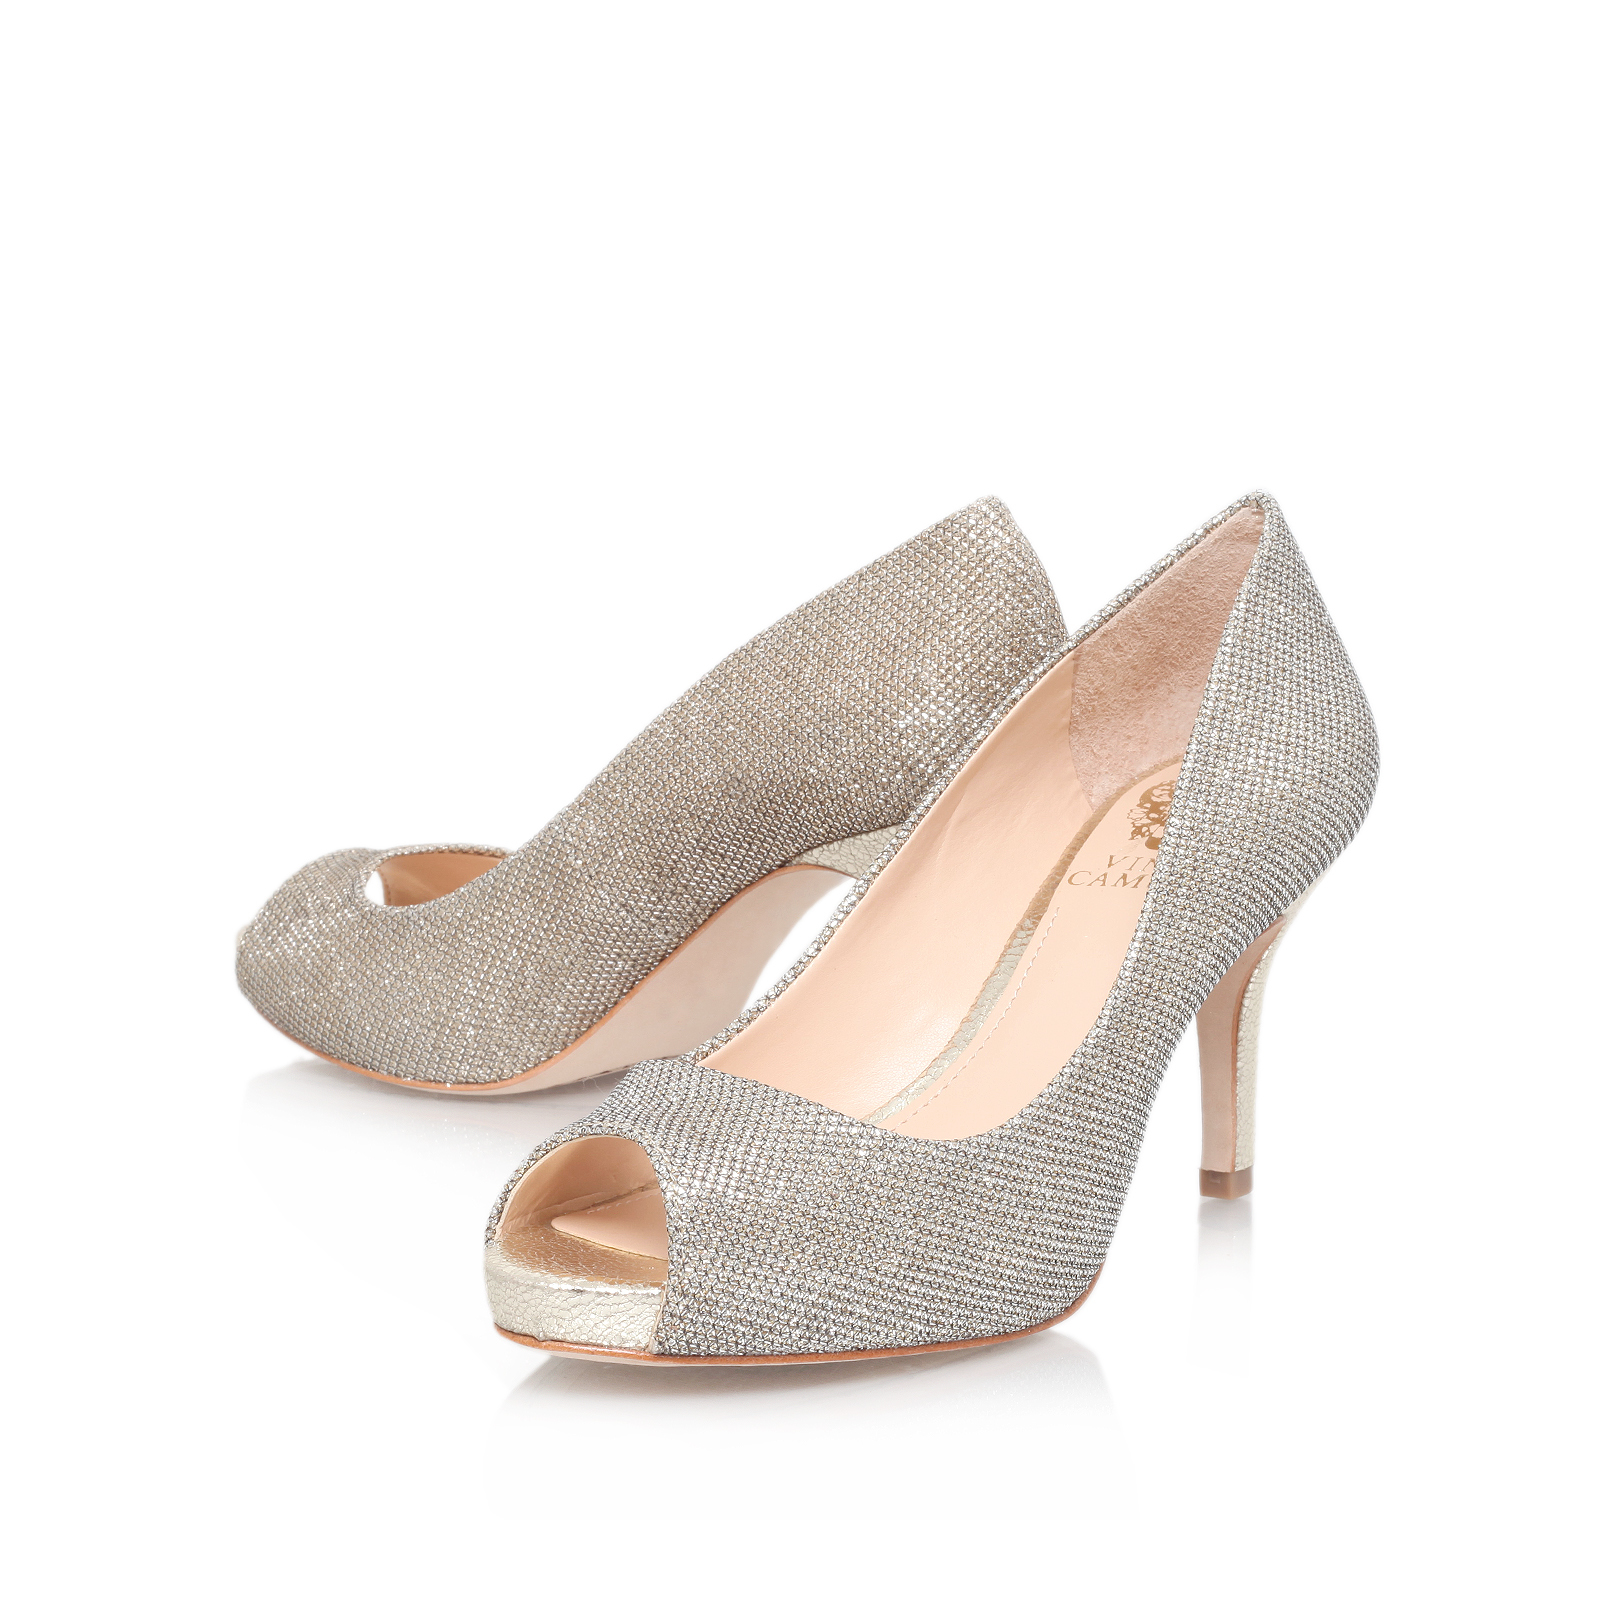 Vince Camuto Kiley1 Gold High Heel Court Shoes By Vince